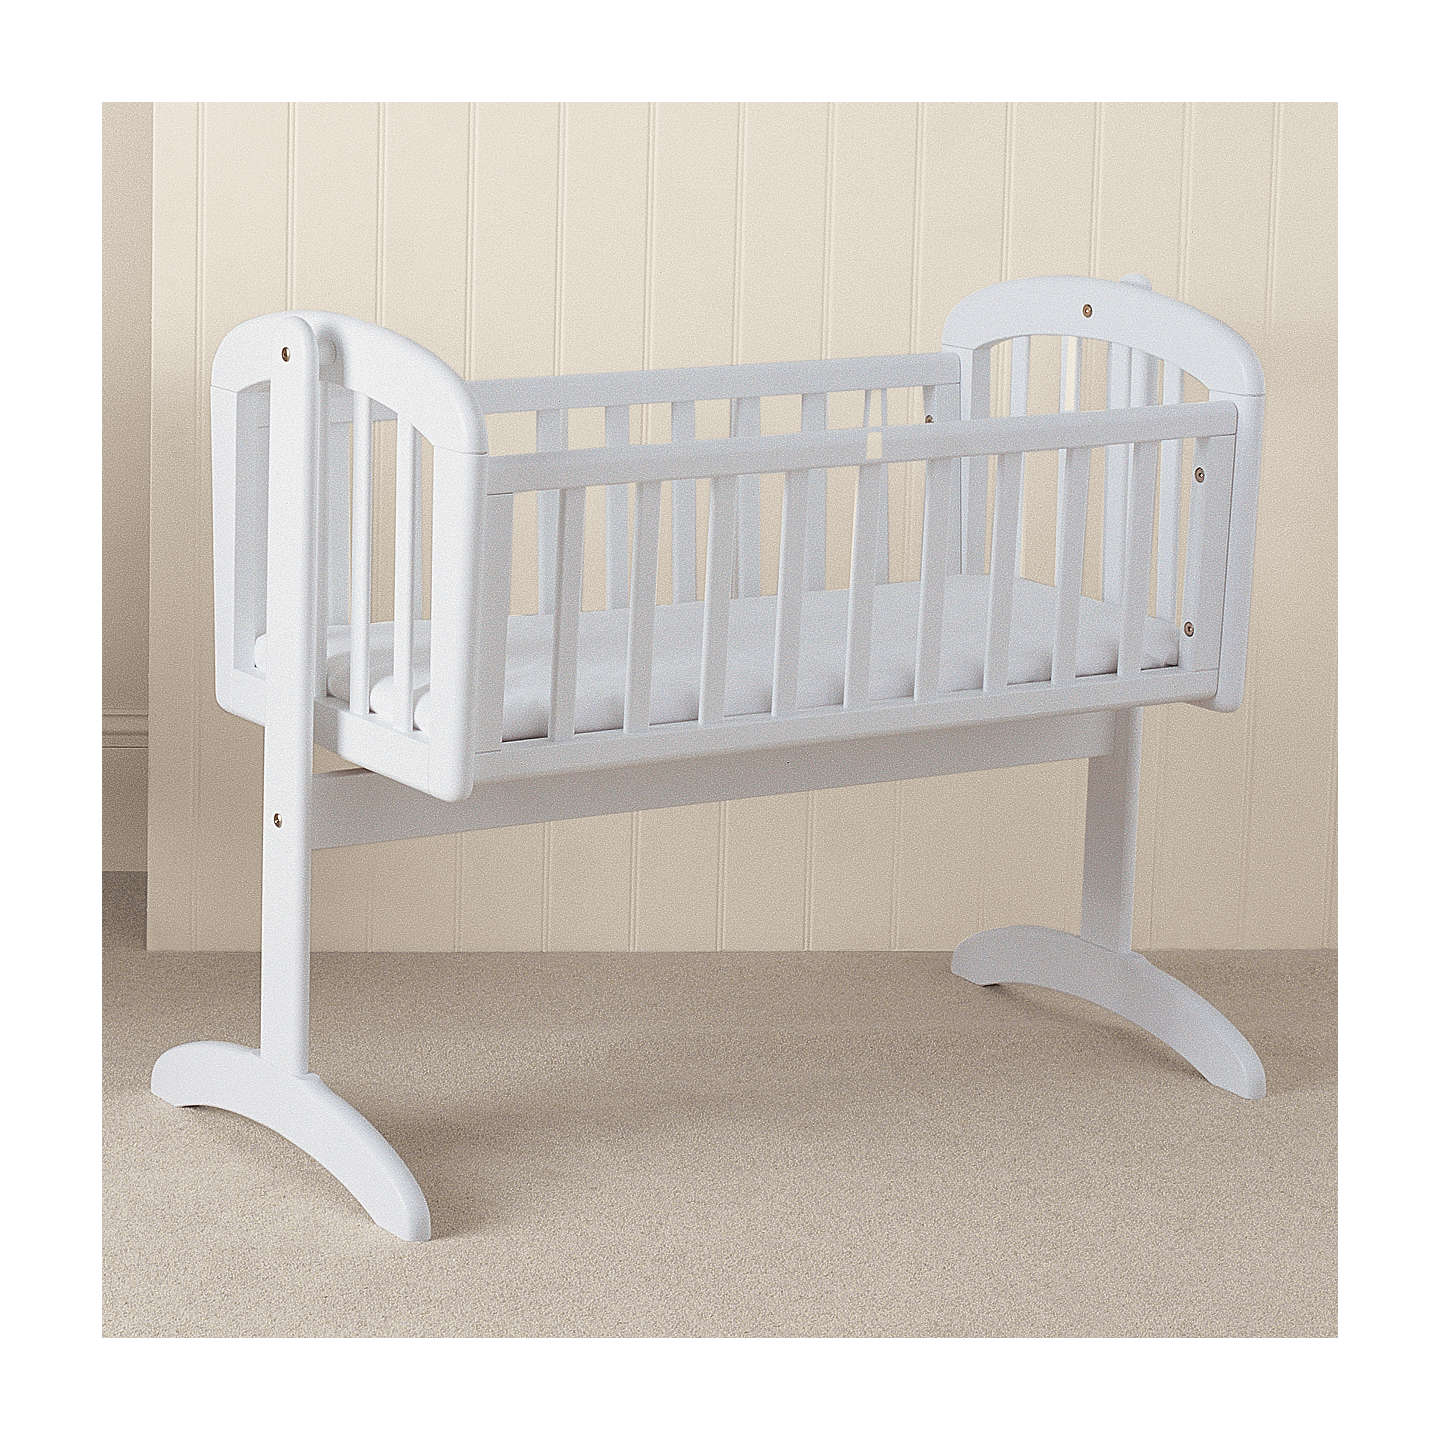 from leigh cribs stone without bars stationary clementine crib and htm frosting court